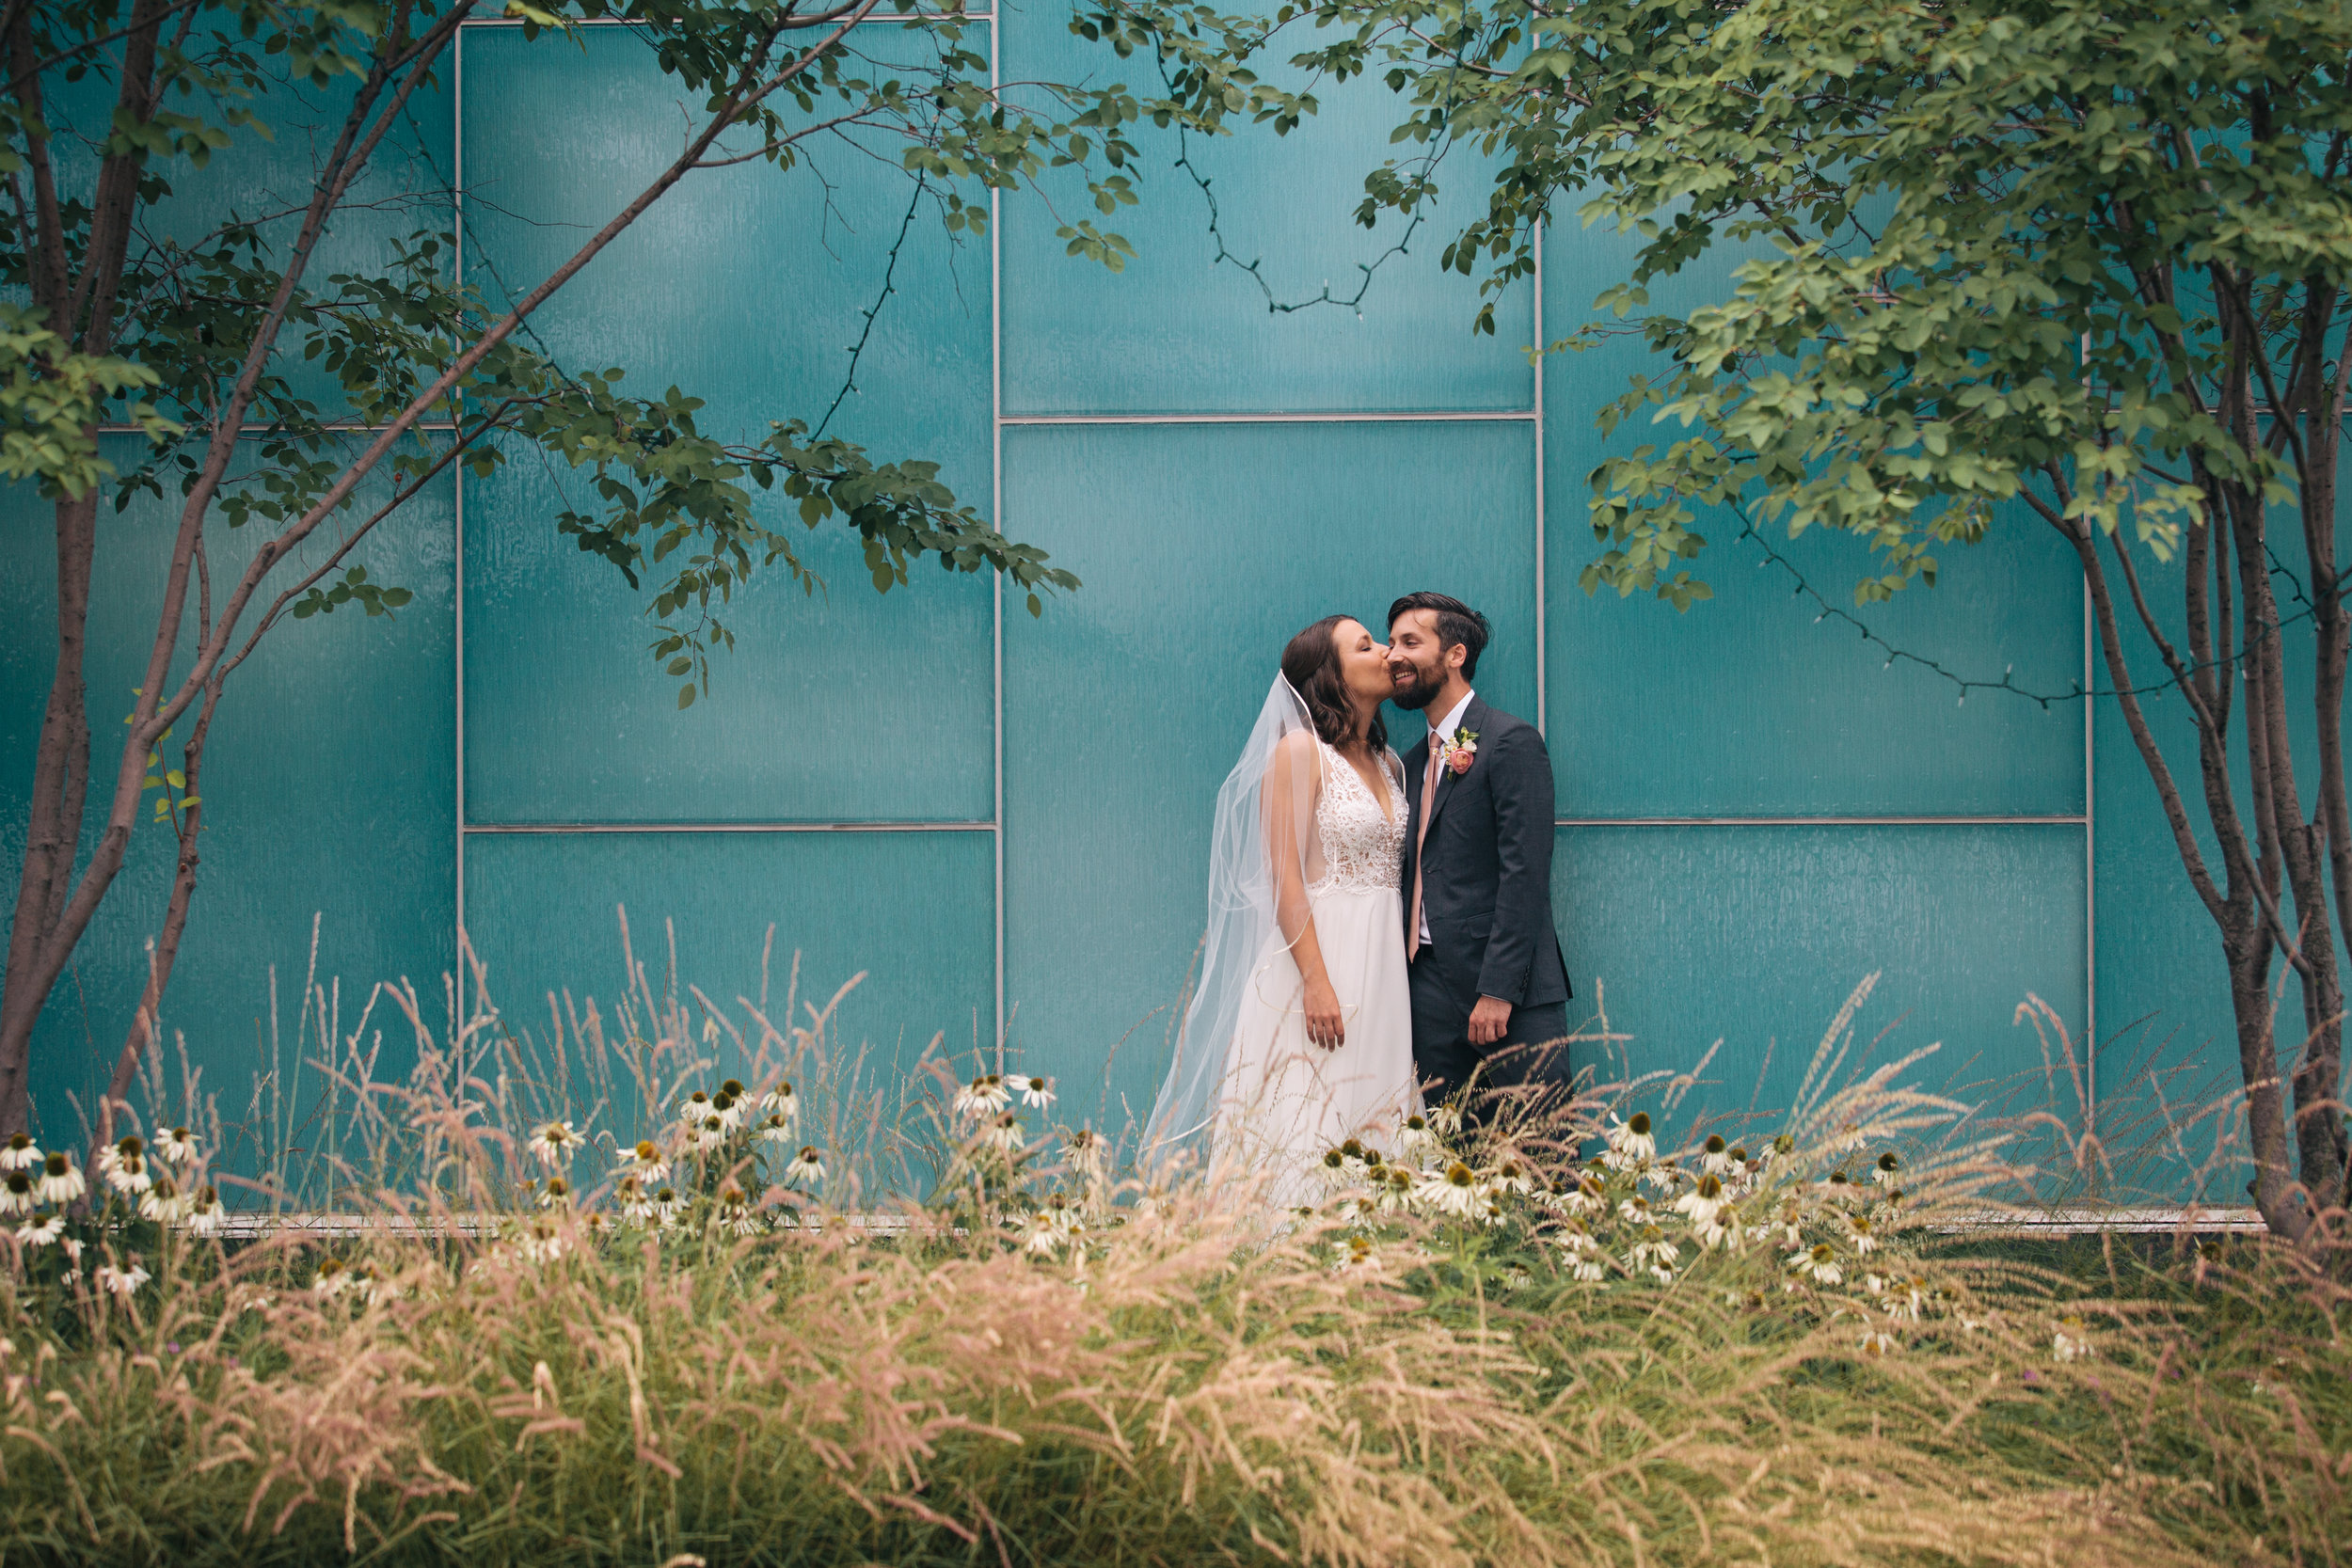 Meg & Mike - A laid-back, Swedish-inspired Minnesota wedding